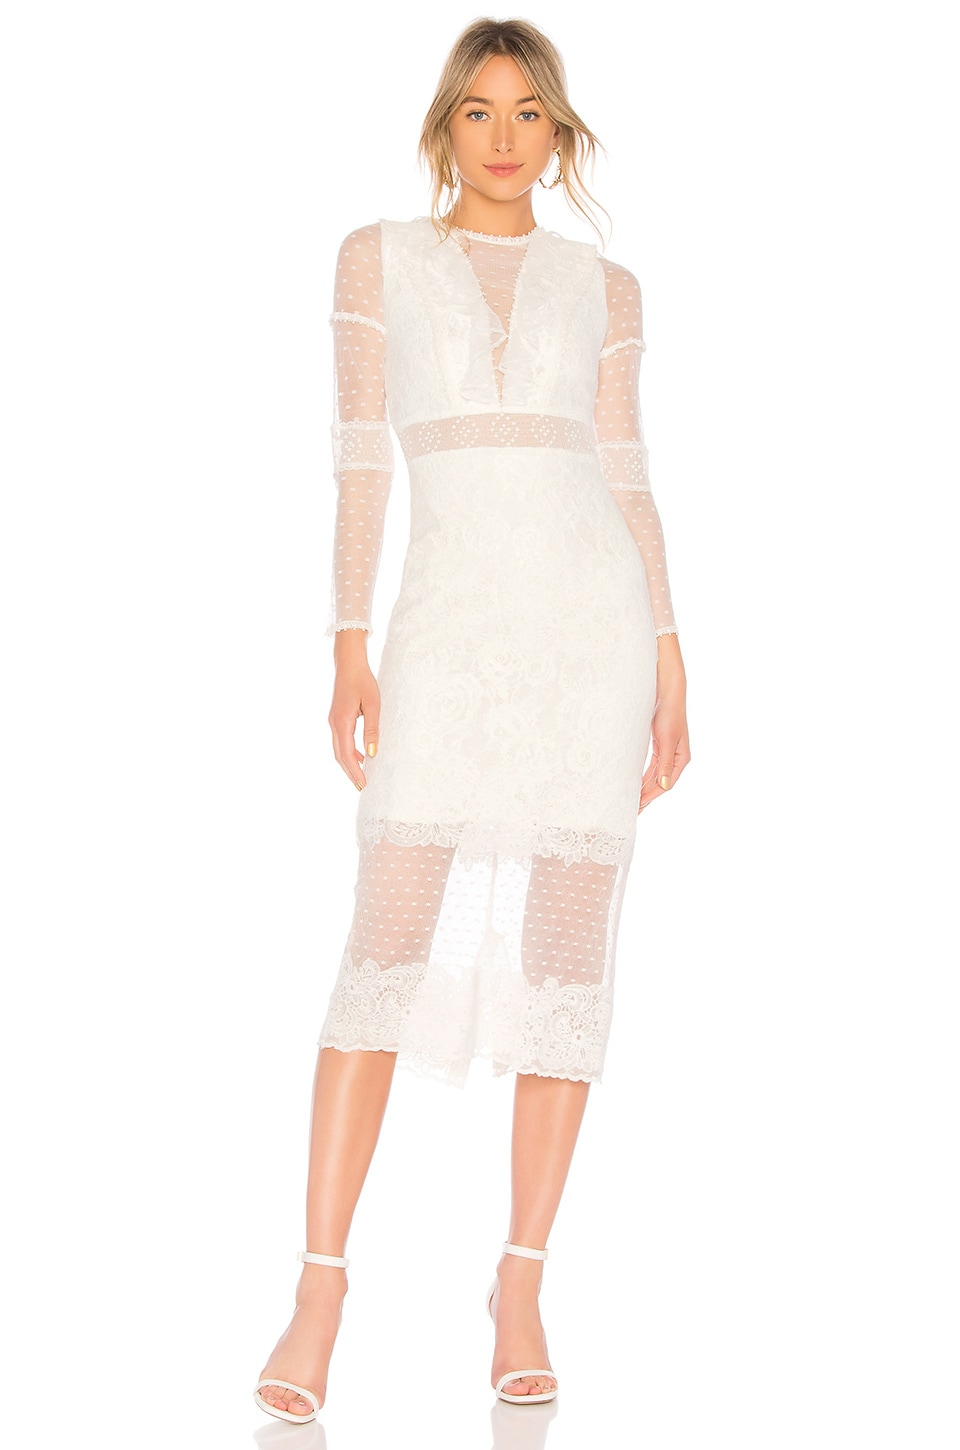 Alexis Elize Dress in White Lace